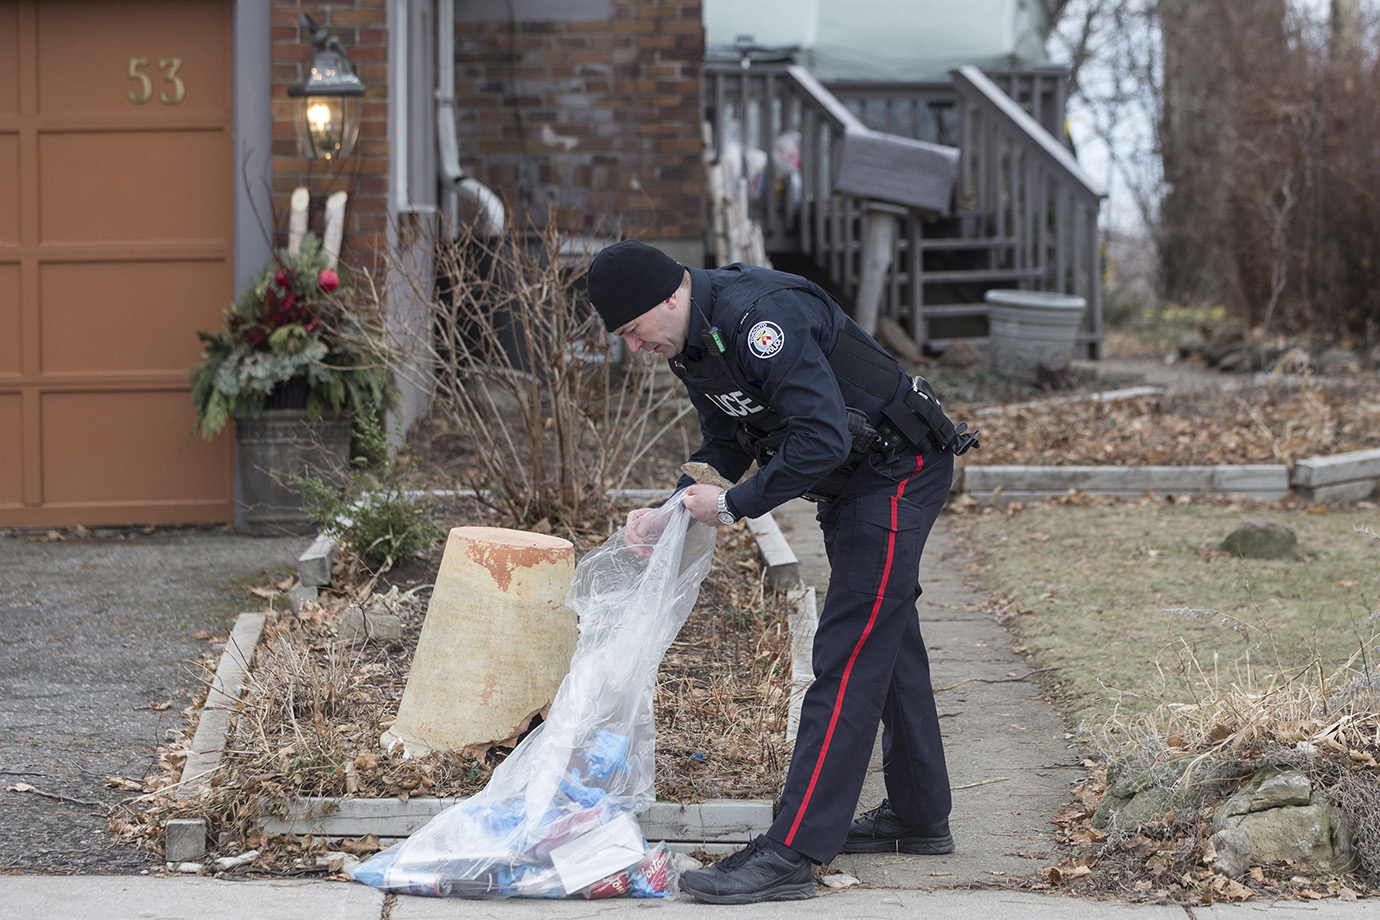 A police officer is shown outside a house on Mallory Crescent in Toronto, where Bruce McArthur did l